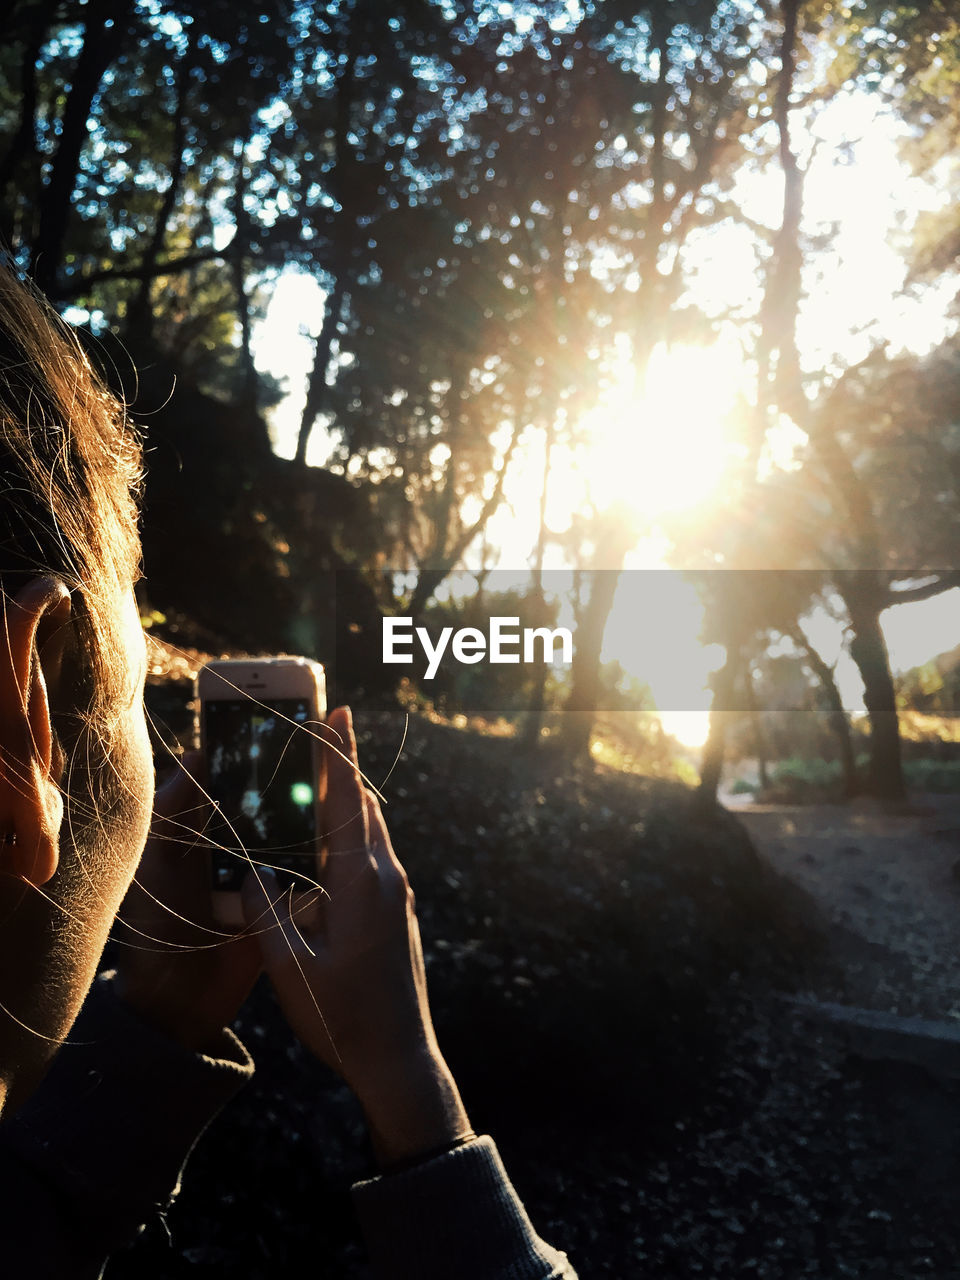 technology, photography themes, wireless technology, one person, activity, tree, real people, photographing, nature, communication, plant, mobile phone, leisure activity, lifestyles, holding, smart phone, portable information device, sunlight, lens flare, outdoors